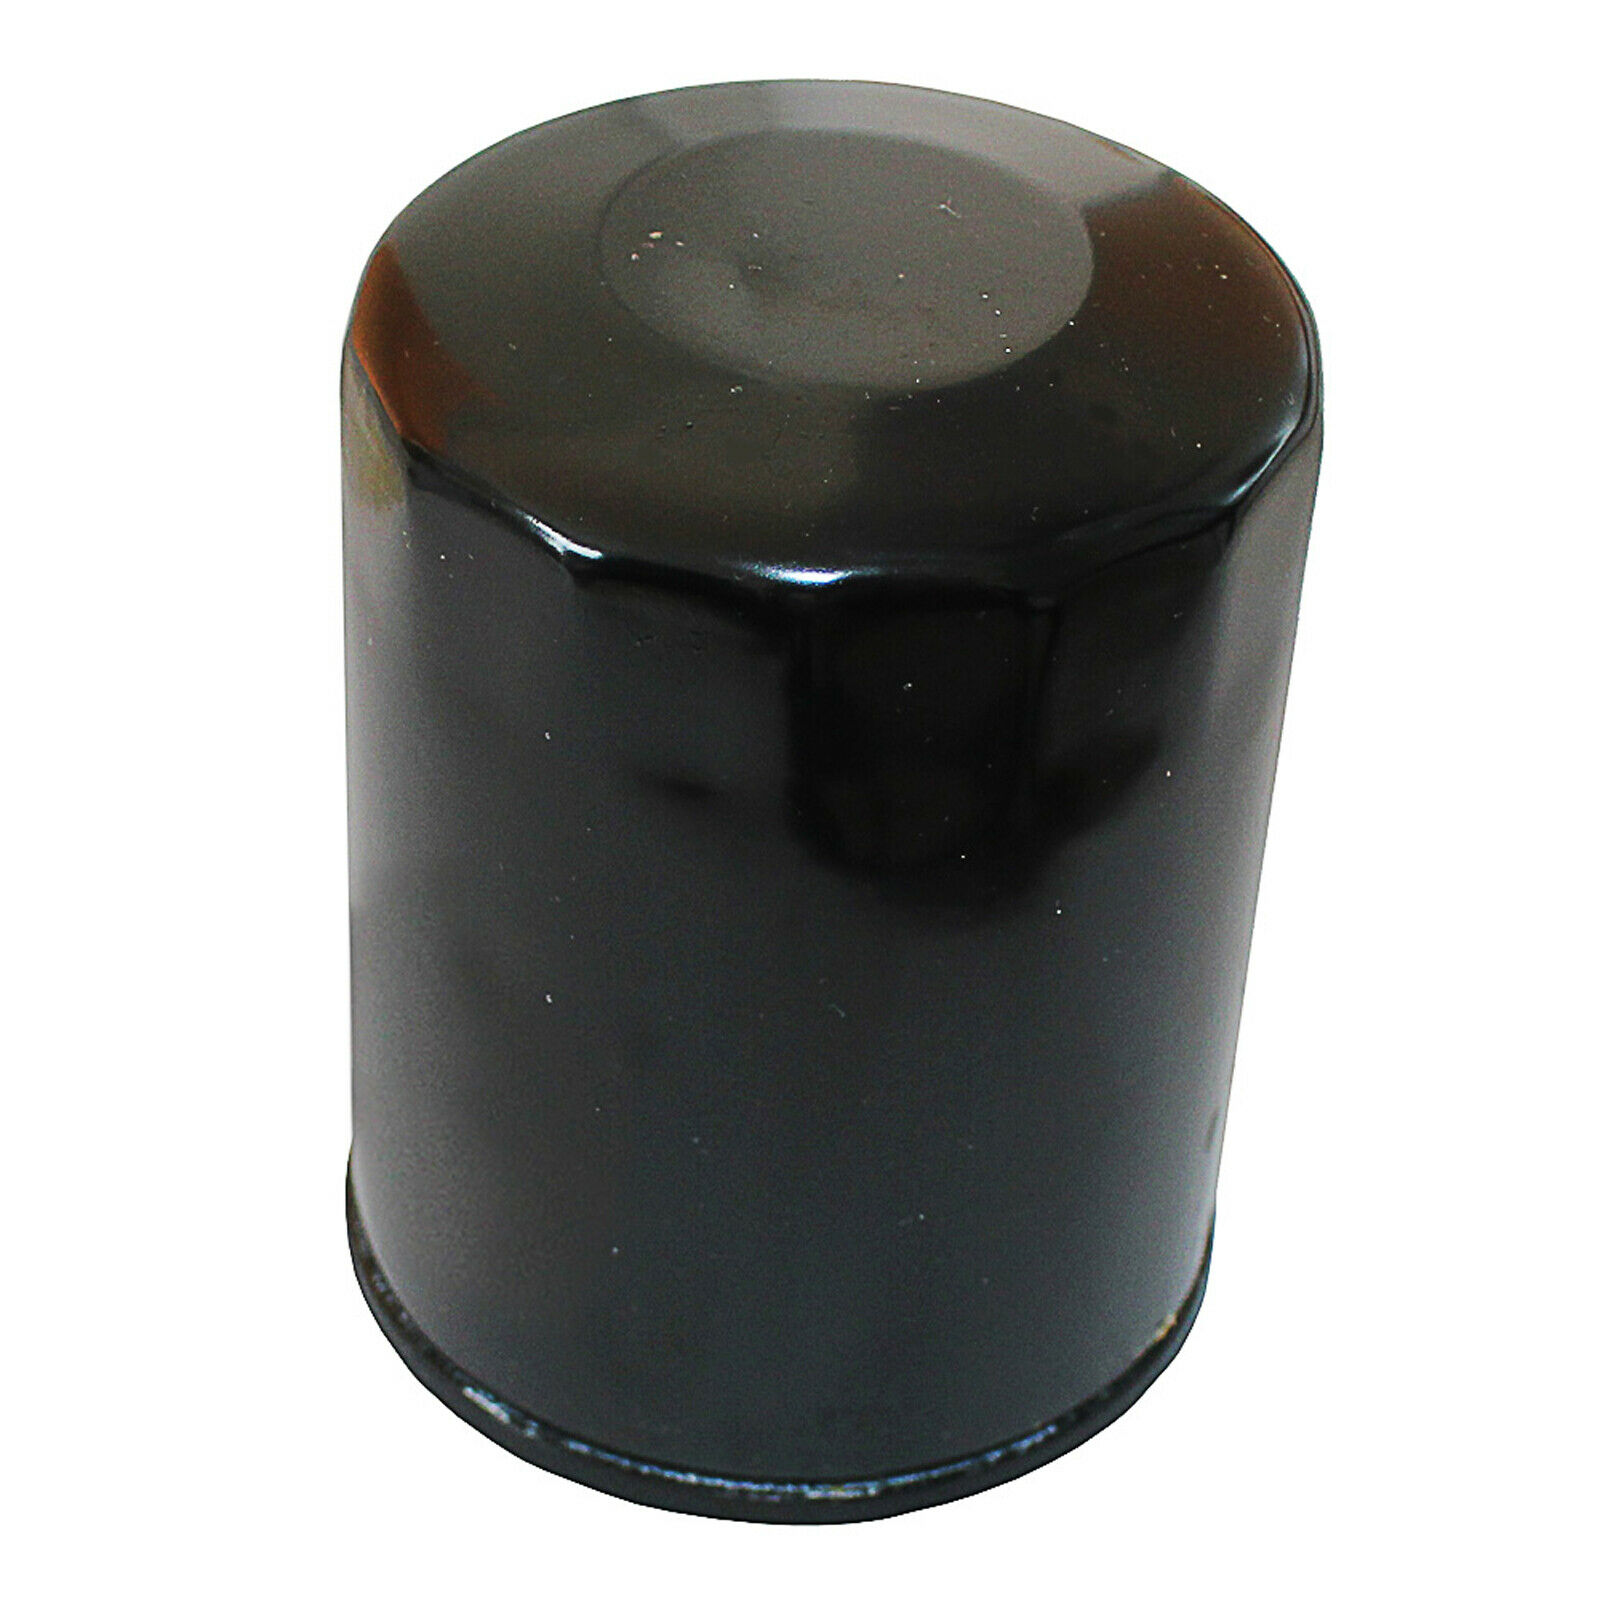 Oil Filter Fits Polaris Sportsman 700 Twin Efi Mv7 Mv X2 2004 Fuel 2008 1 Of 1free Shipping